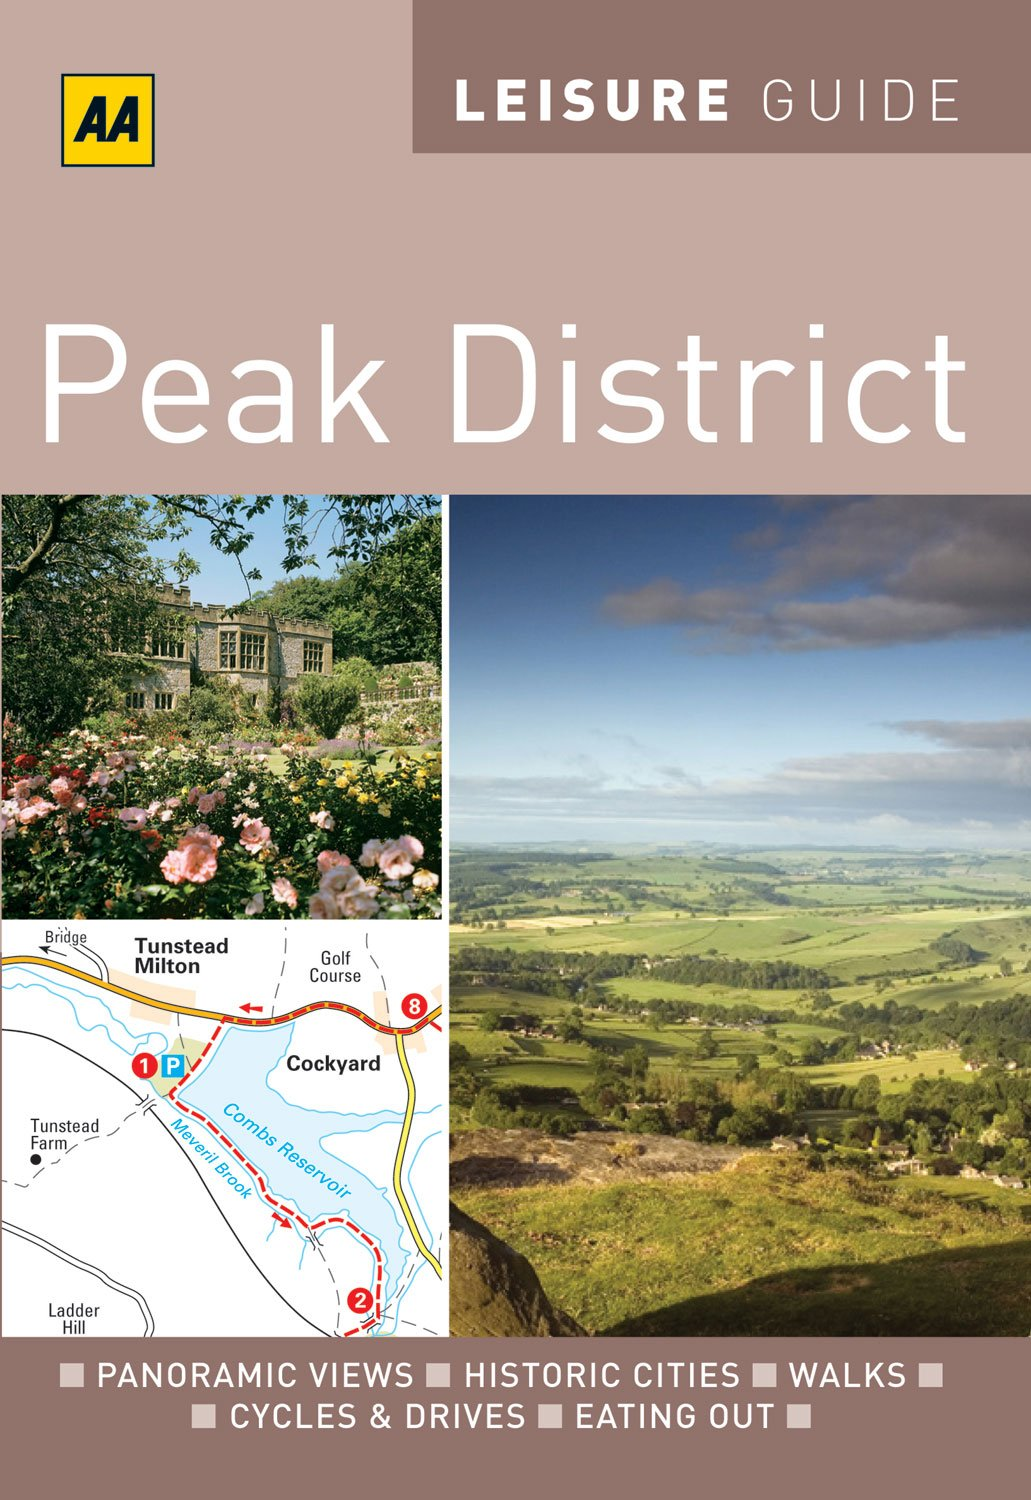 Peak District (AA Leisure Guides)